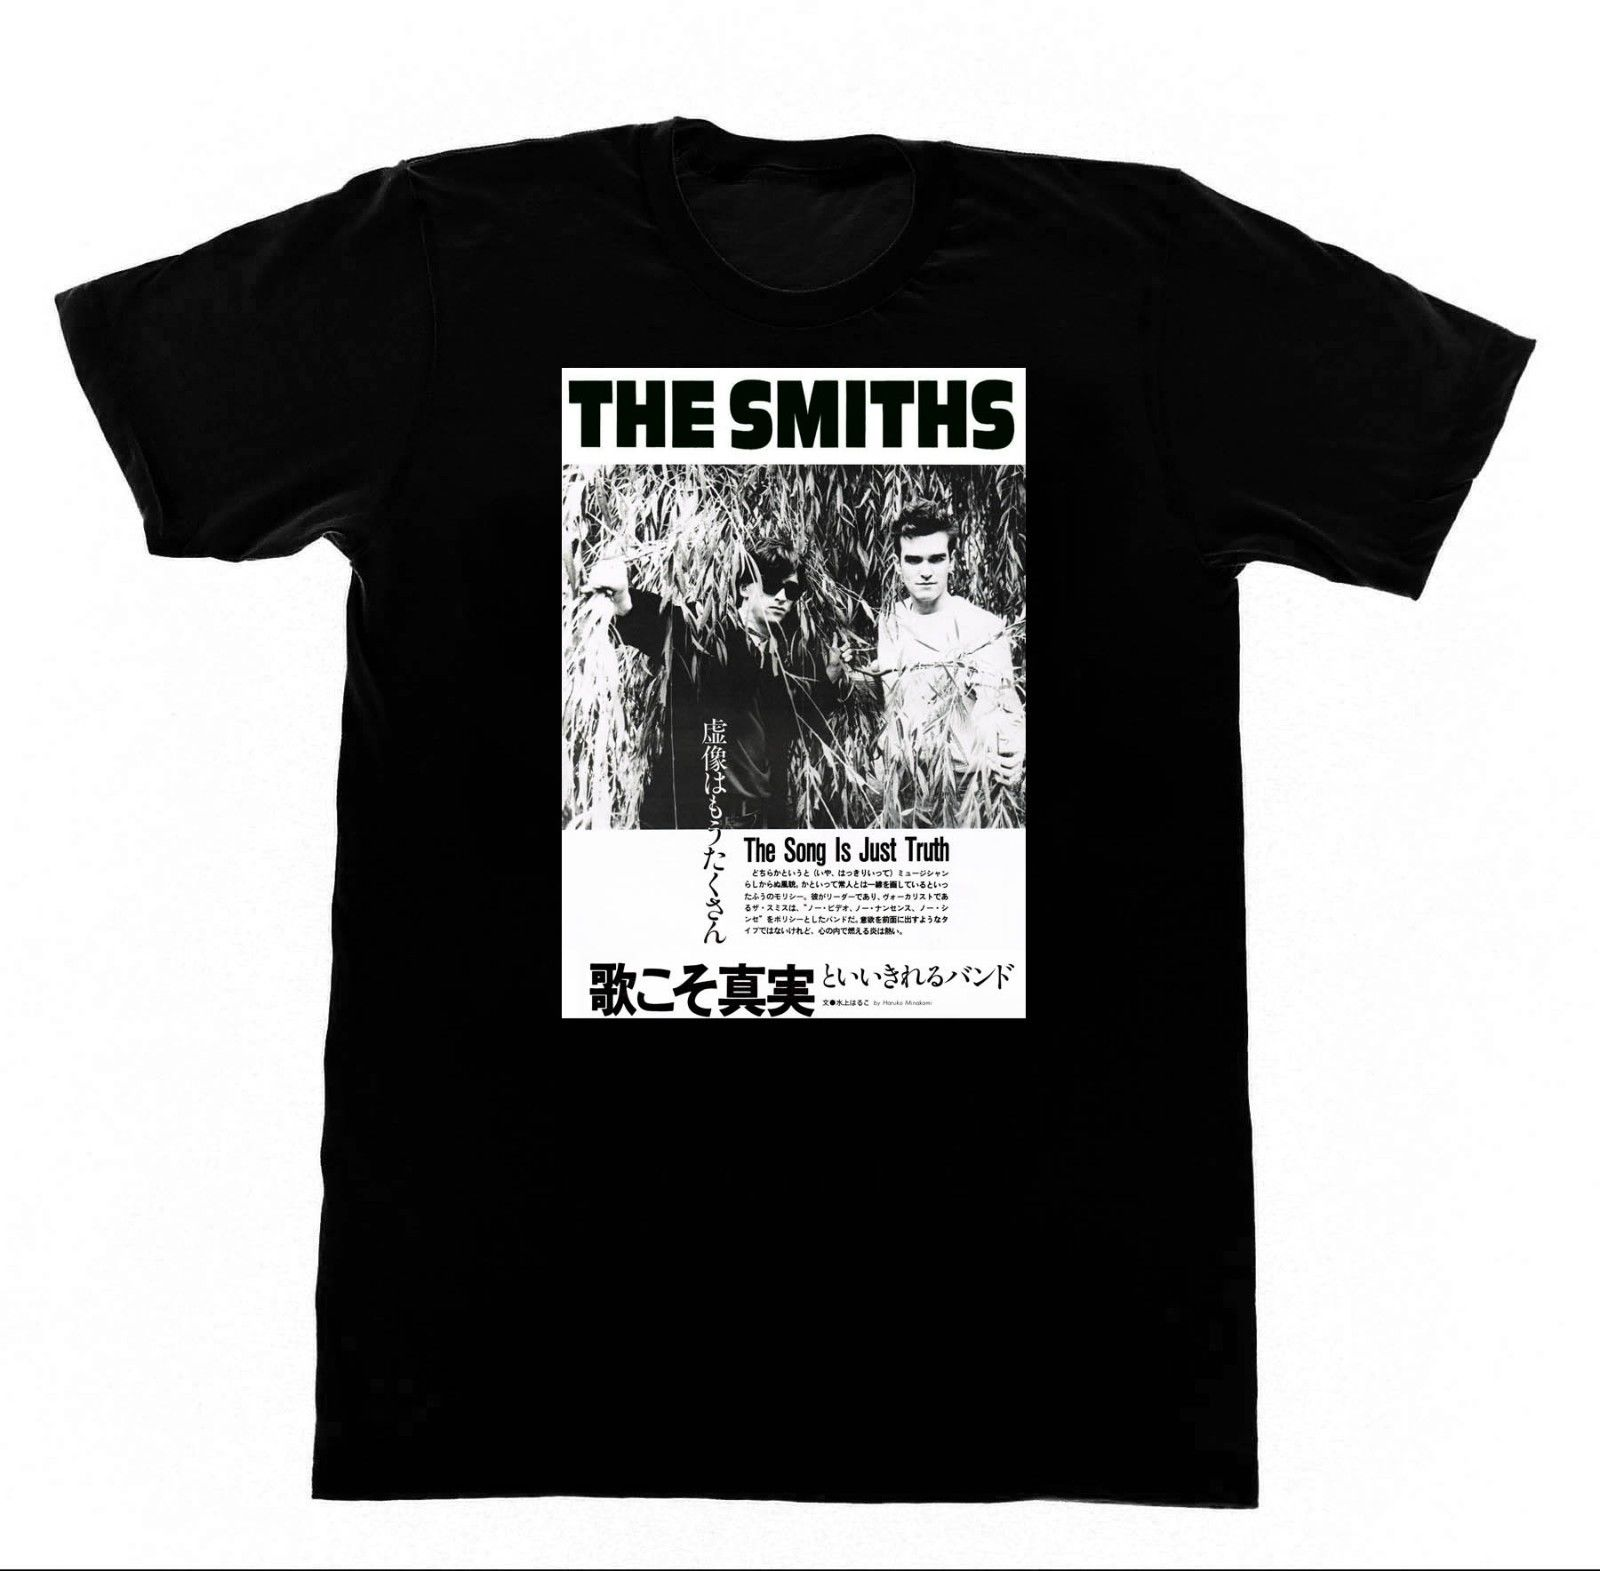 Men's Clothing Tops & Tees Enthusiastic The Smiths Japanese Import T Shirt Morrisey Printed T-shirt Short Sleeve Men Cheap Price 100 % Cotton Tee Shirts Bringing More Convenience To The People In Their Daily Life